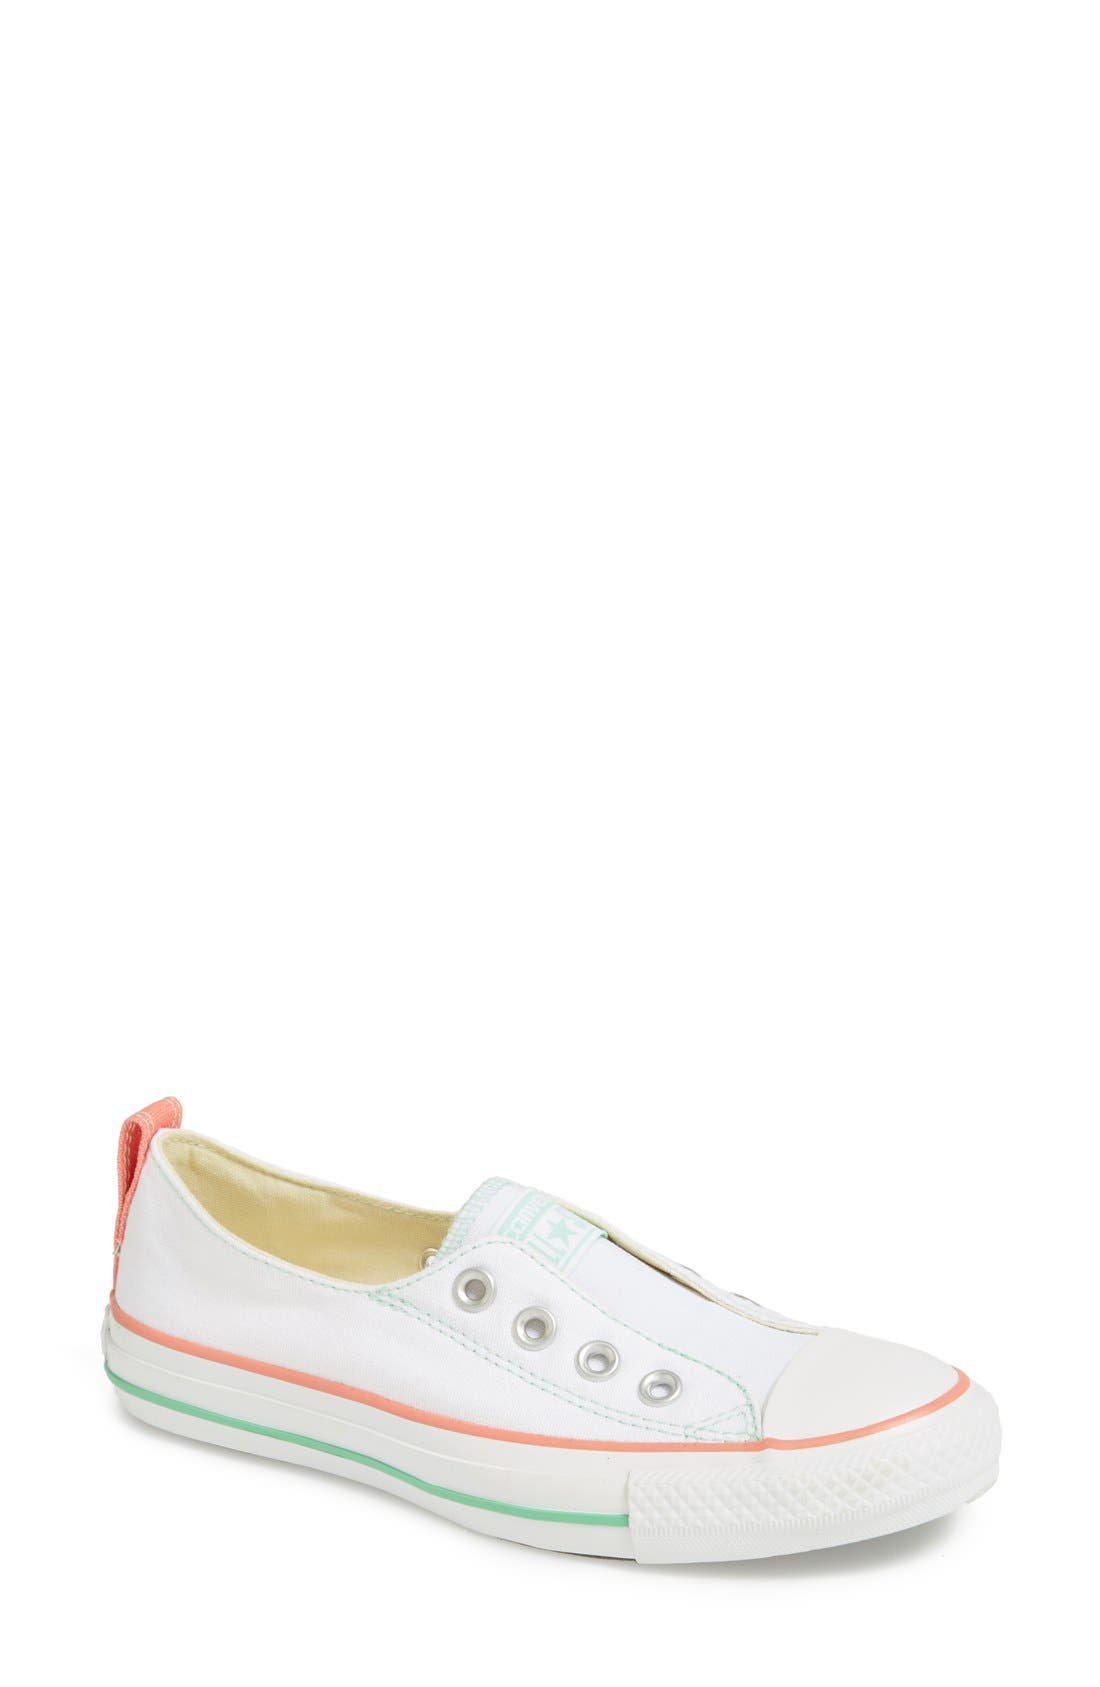 Main Image - Converse Chuck Taylor® All Star® Laceless Slip-On Sneaker (Women)